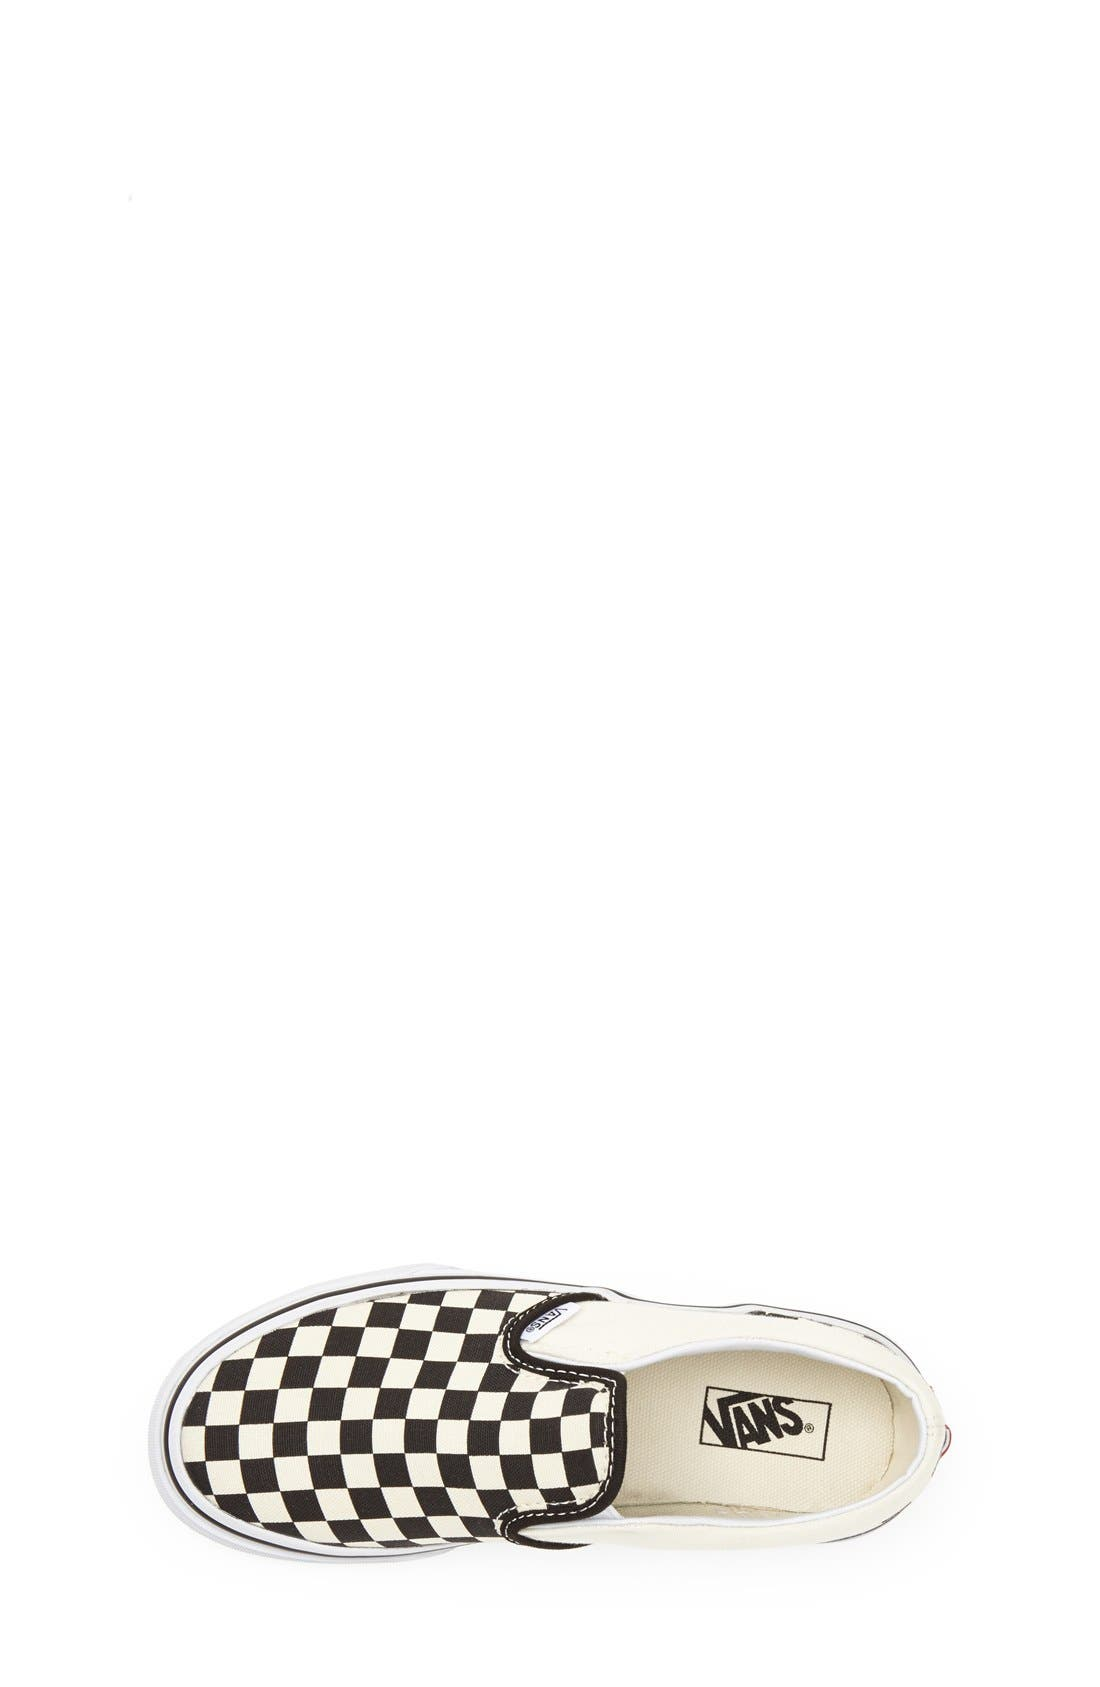 VANS, 'Classic - Checkerboard' Slip-On, Alternate thumbnail 5, color, BLACK/ WHITE CHECKERBOARD